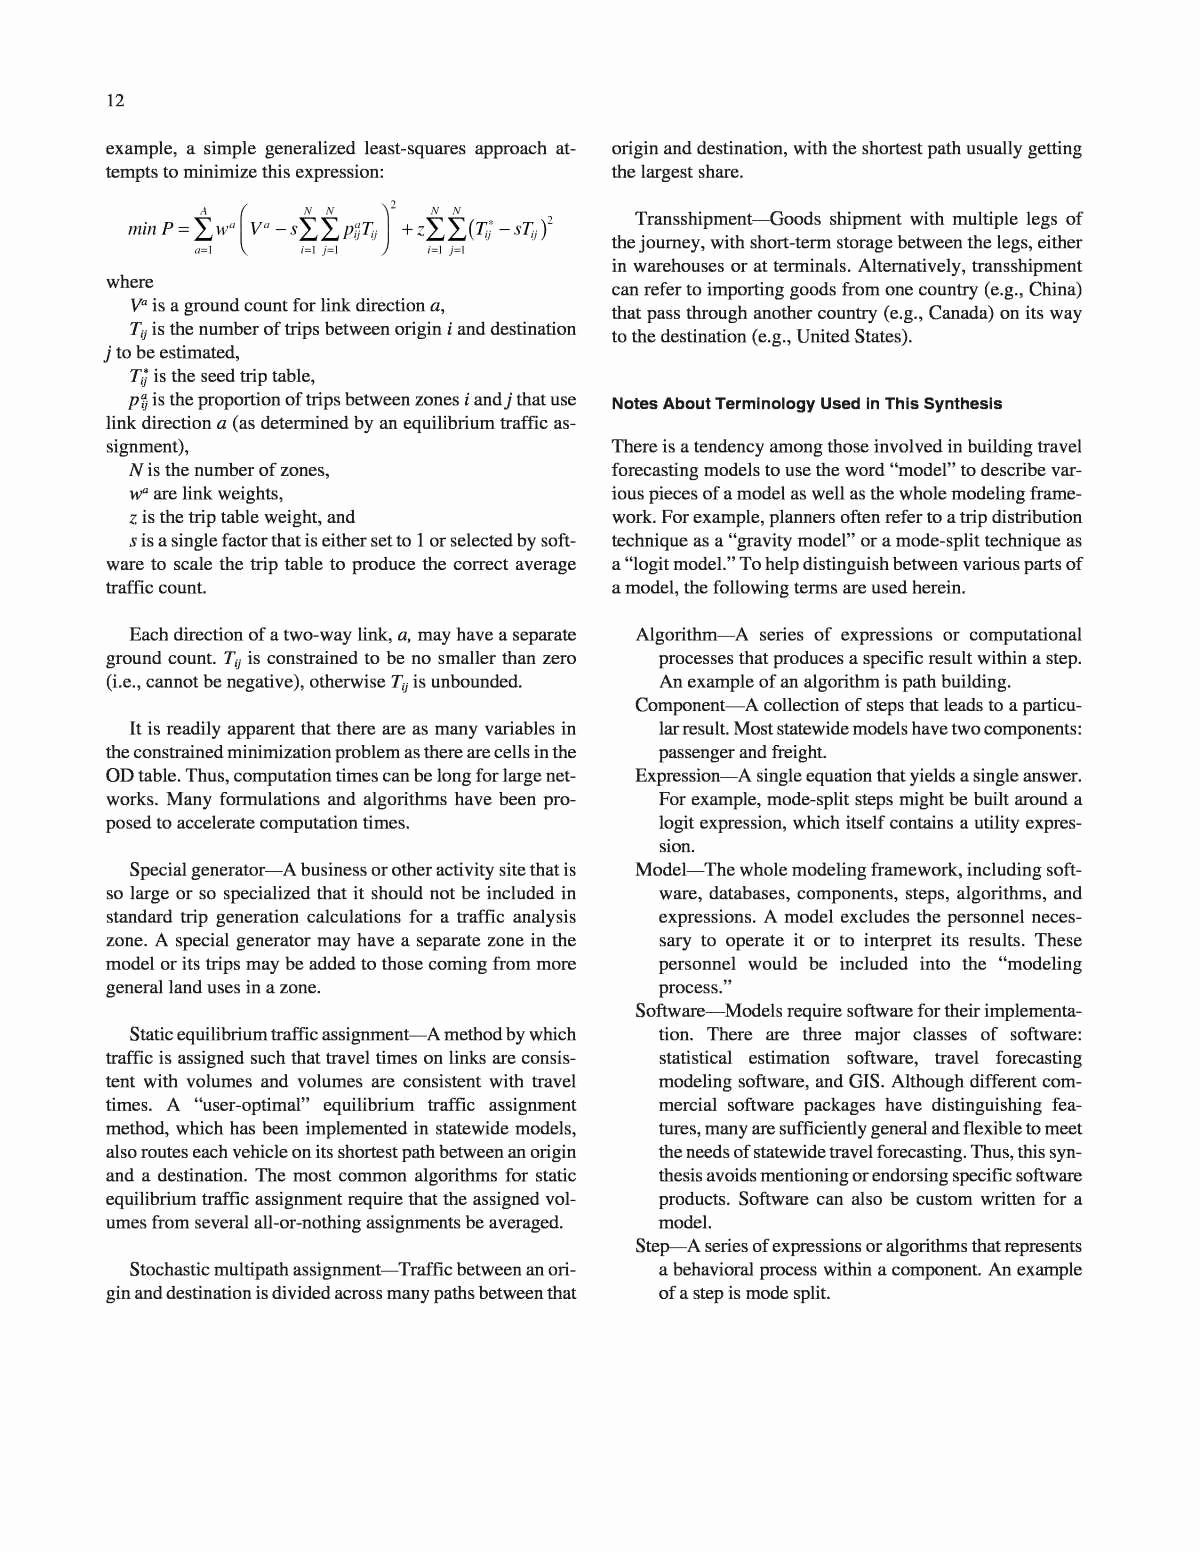 Quadratic formula Worksheet with Answers Elegant Quadratic formula Riddle Worksheet